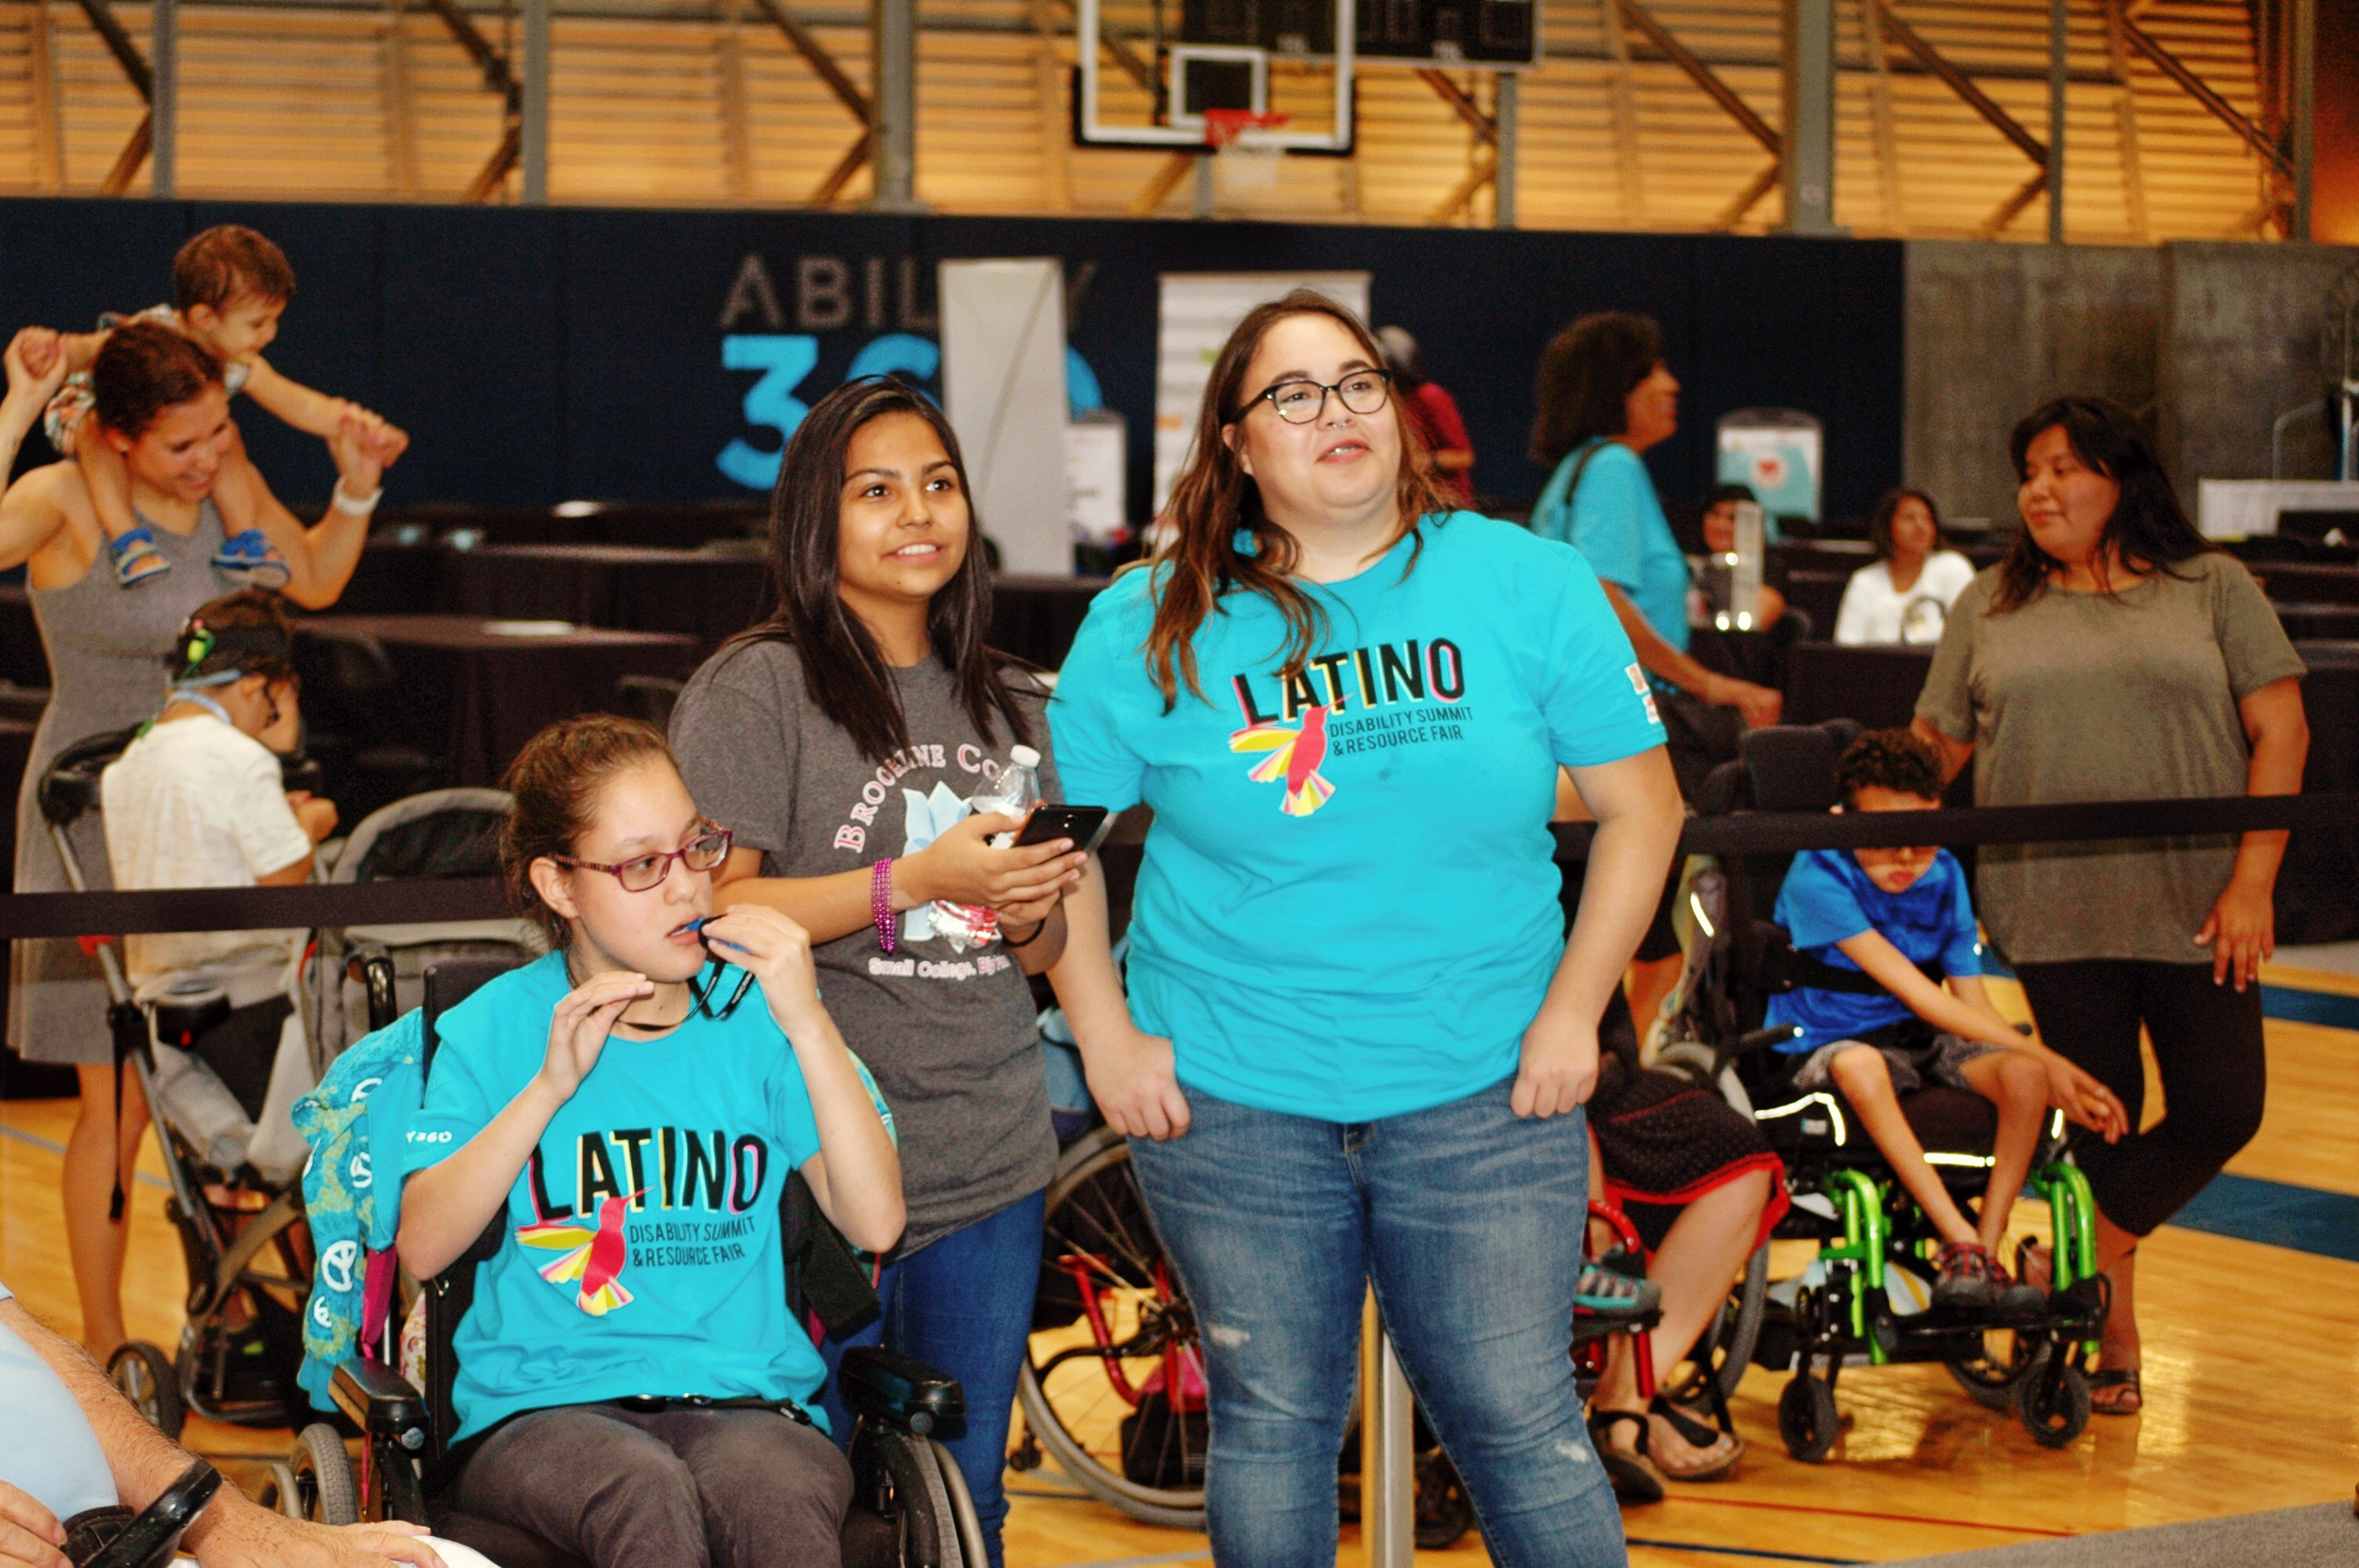 Mia Daniels (left), A Student At Cesar Chavez High School, And Her Caregiver, Who Graduated From Cesar Chavez High School Last Year, Attended The Disability Forum And Expo Event Last Year. Photo Courtesy Arizona Latino Council On Disabilities